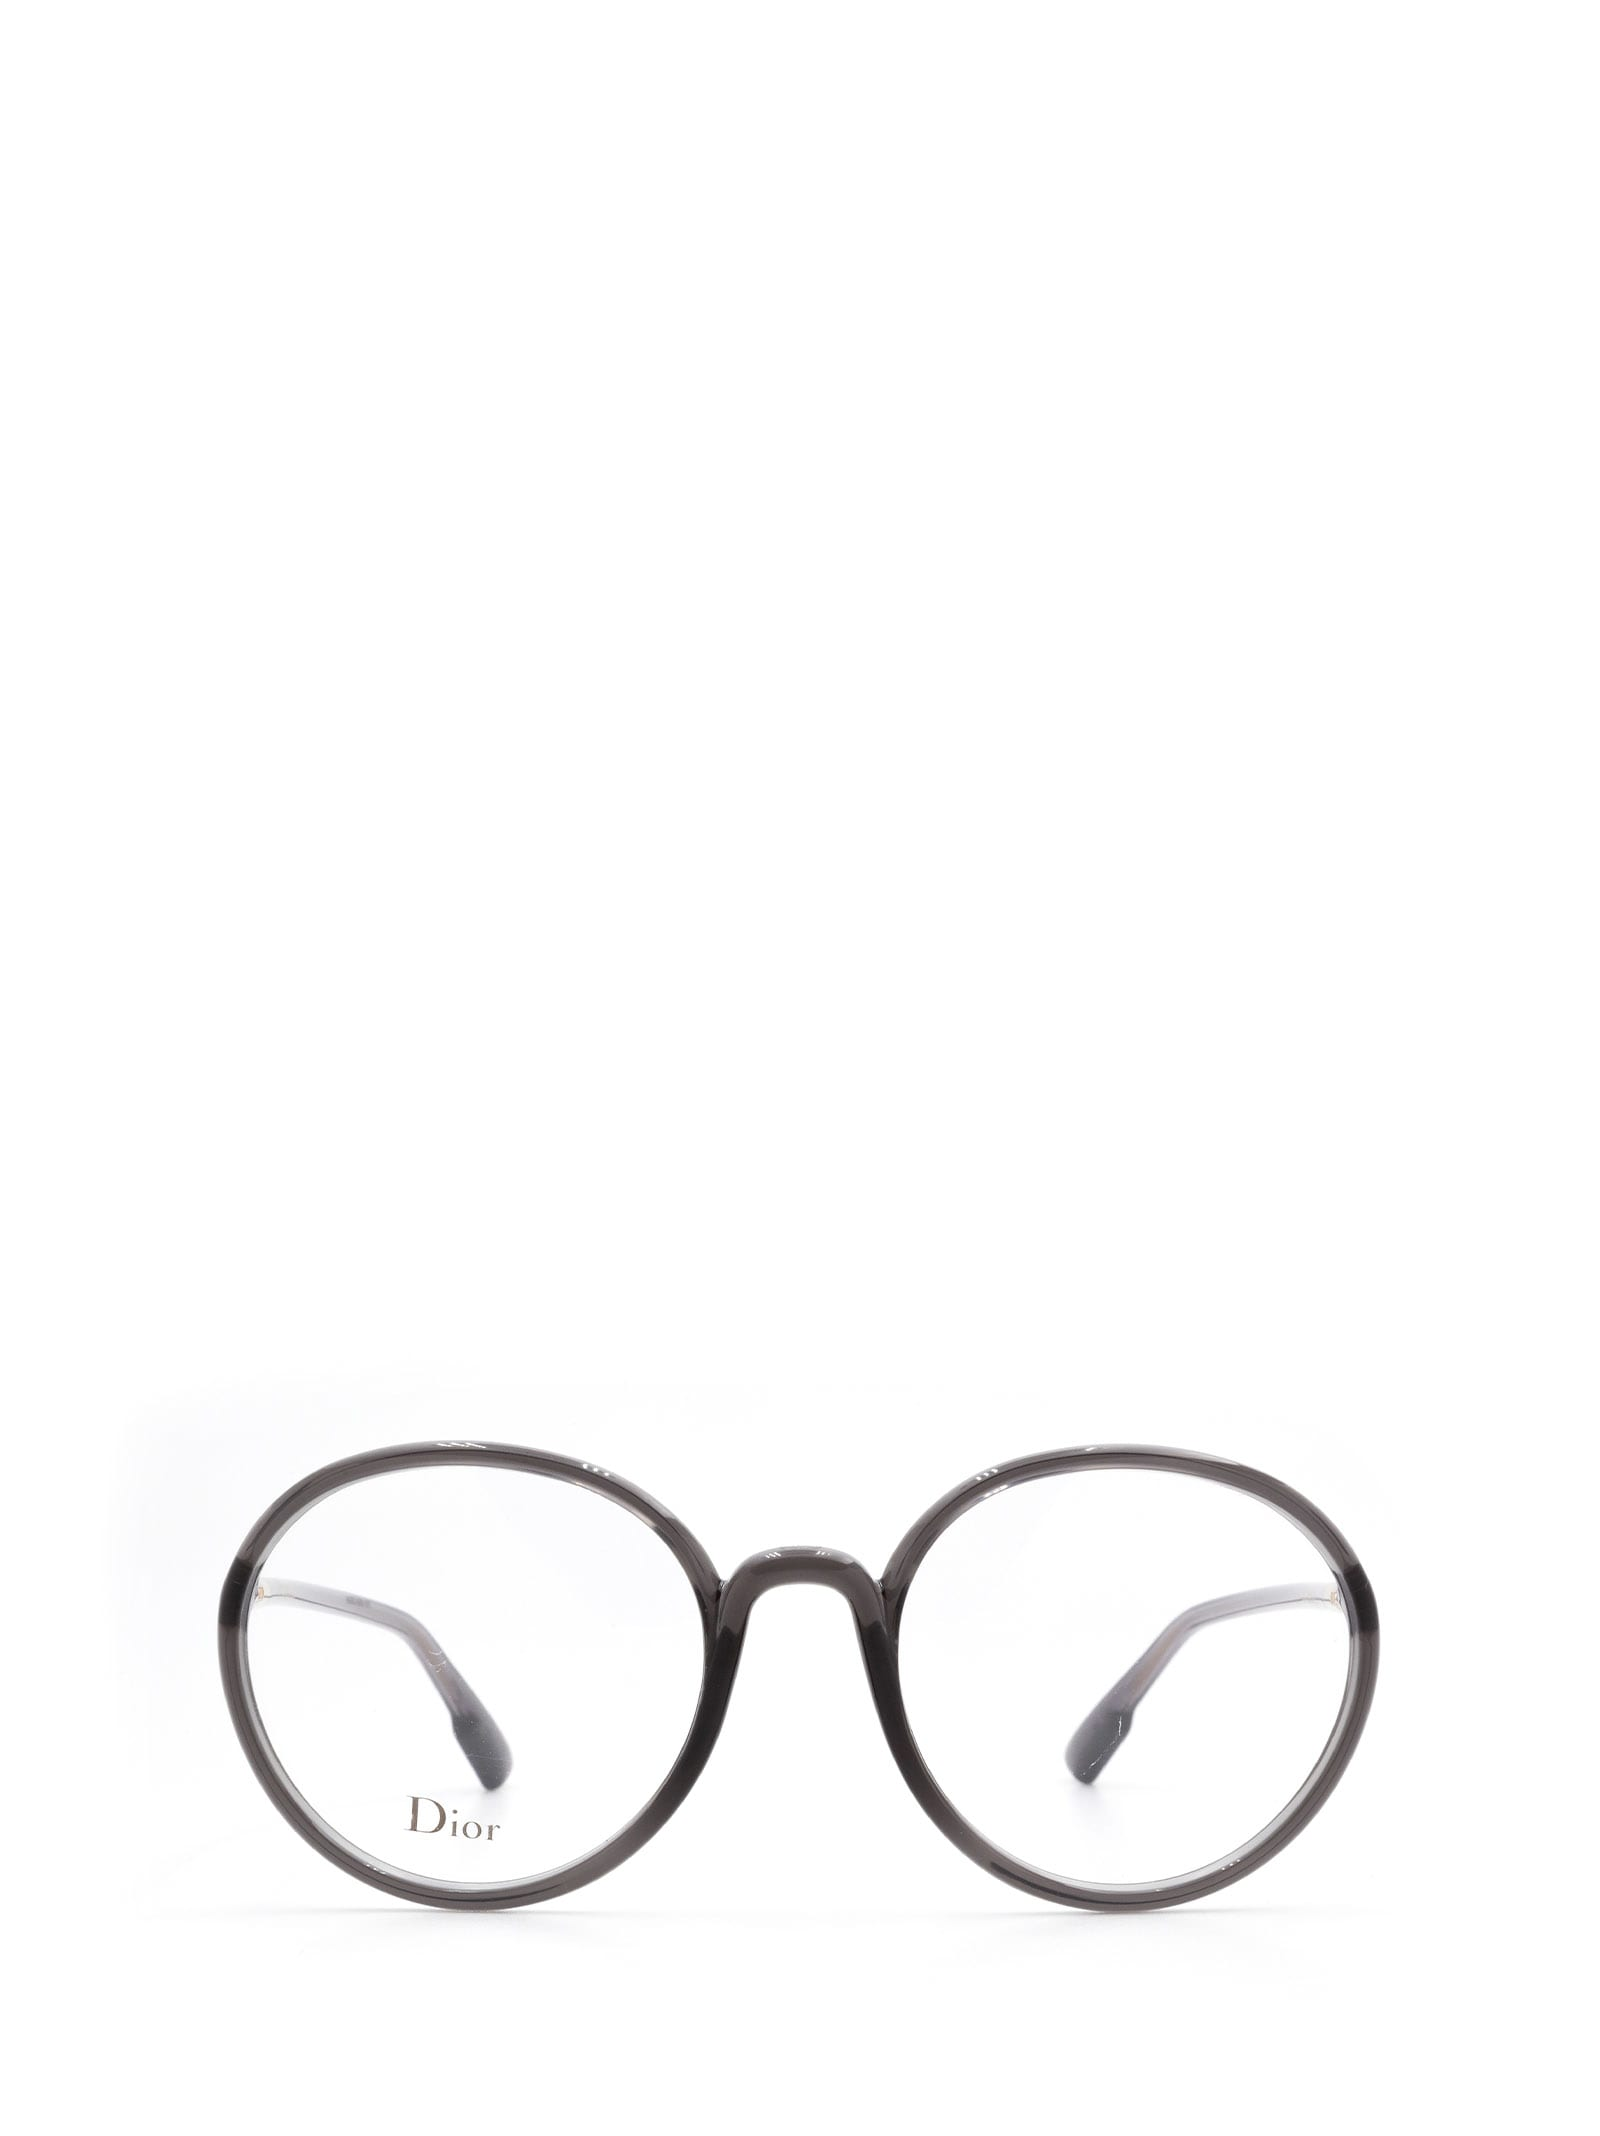 Dior SOSTELLAIREO2 KB7 GLASSES